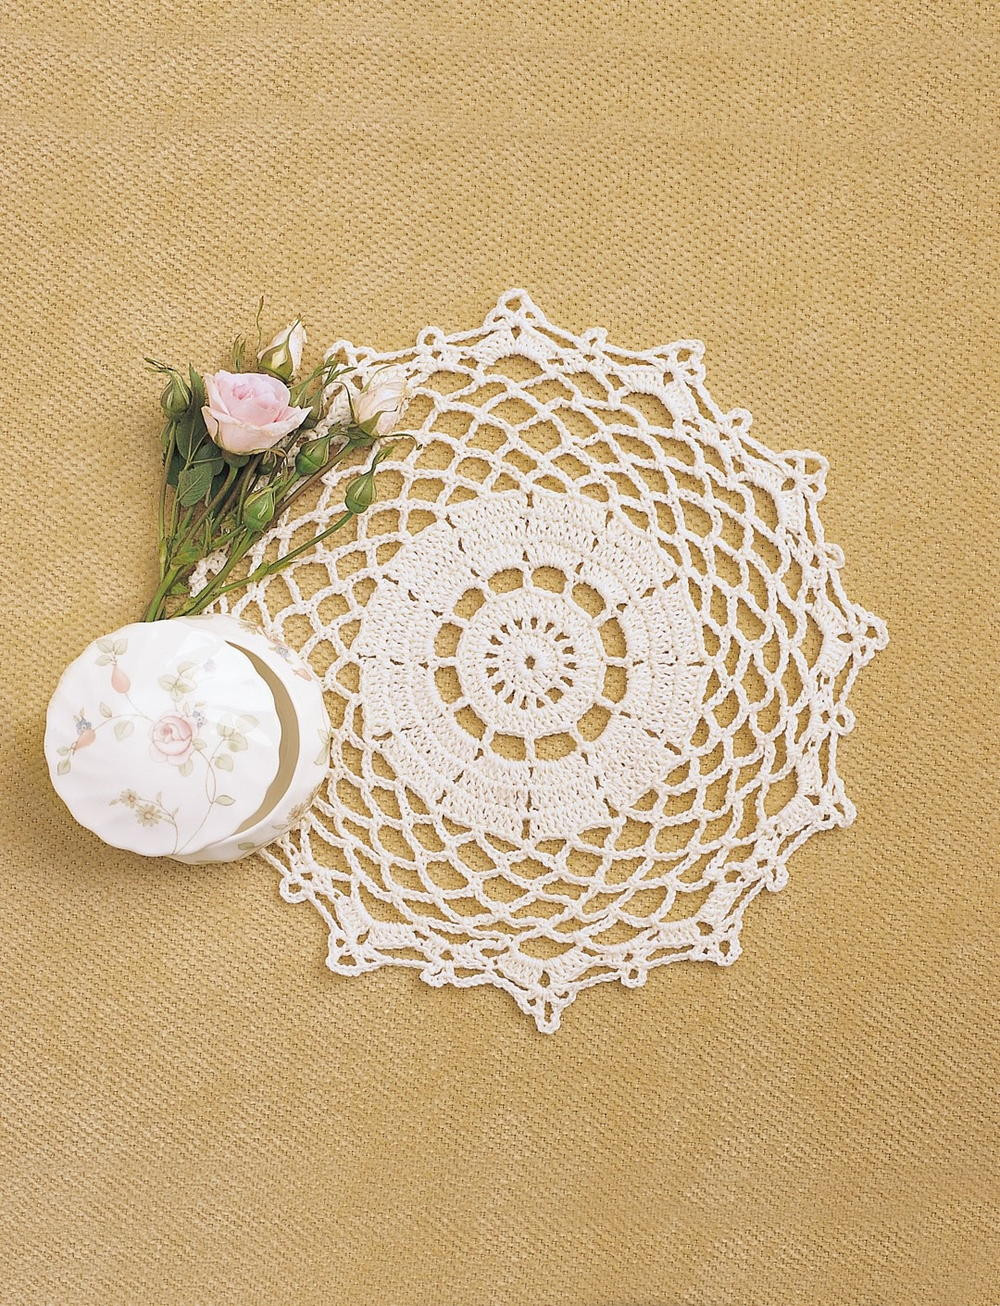 Crochet Doilies Beautiful Pretty Doily Crochet Pattern Of Incredible 43 Ideas Crochet Doilies